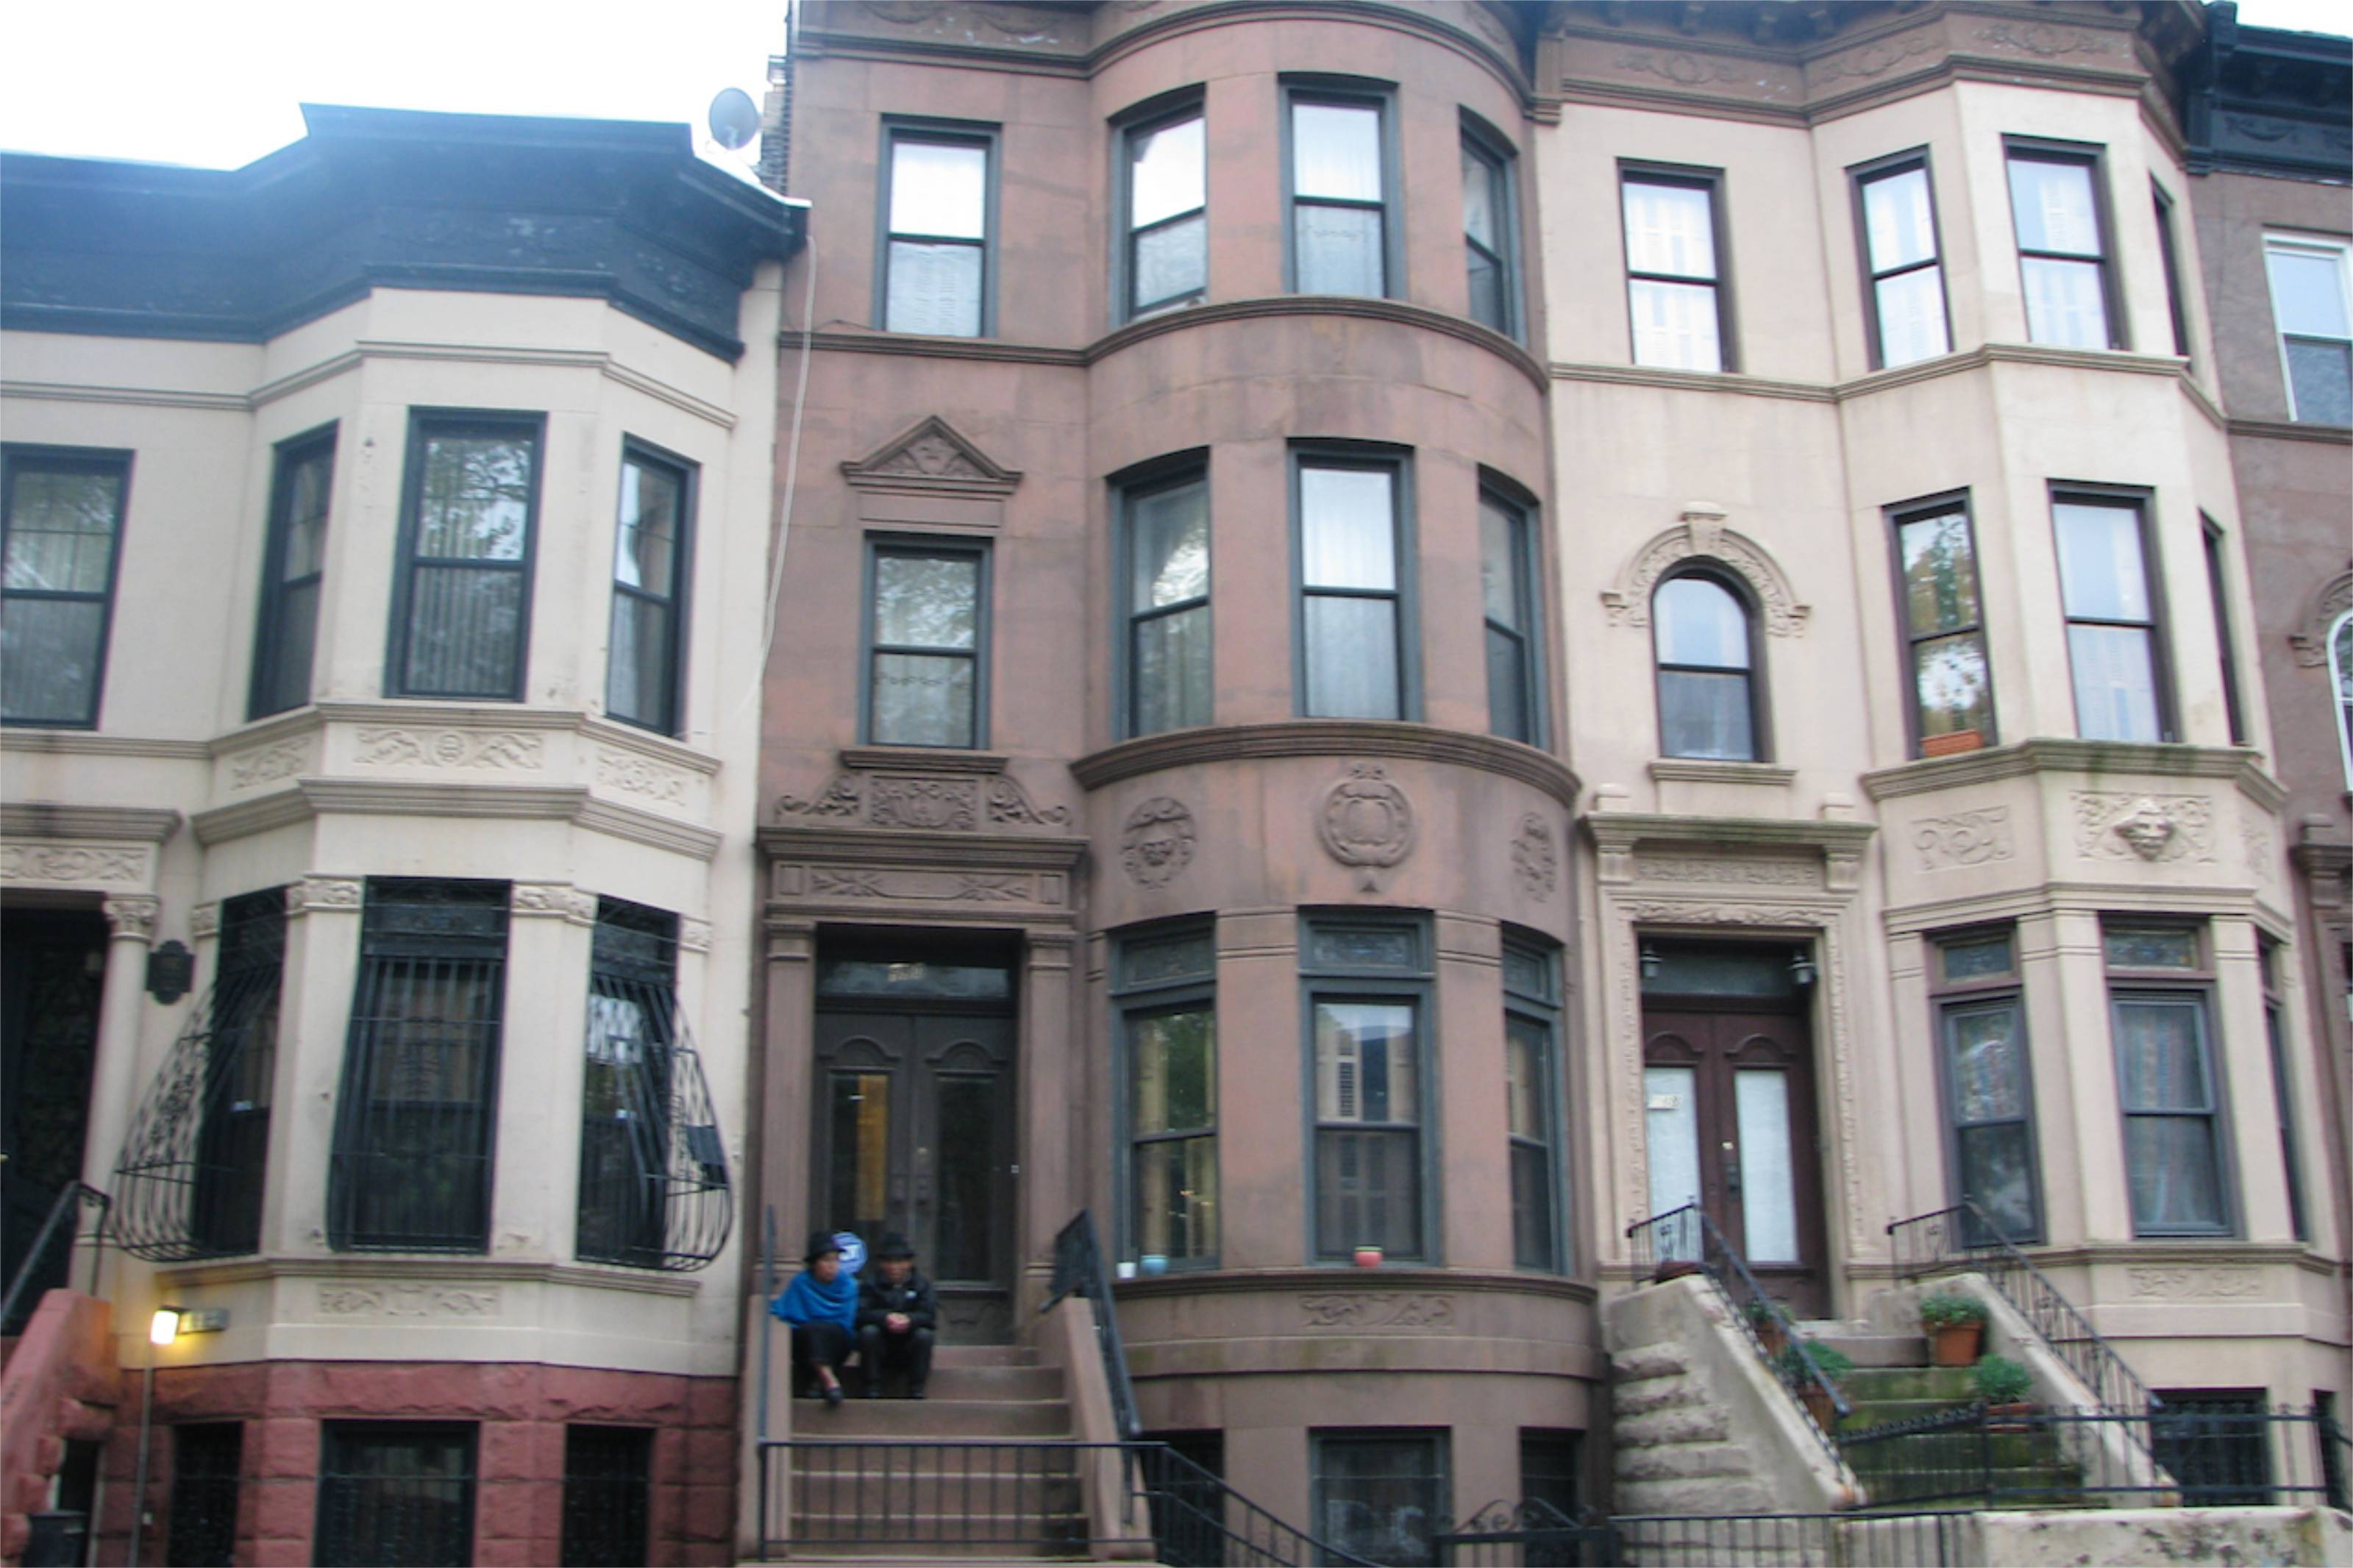 Baltazar's apartment in Brooklyn